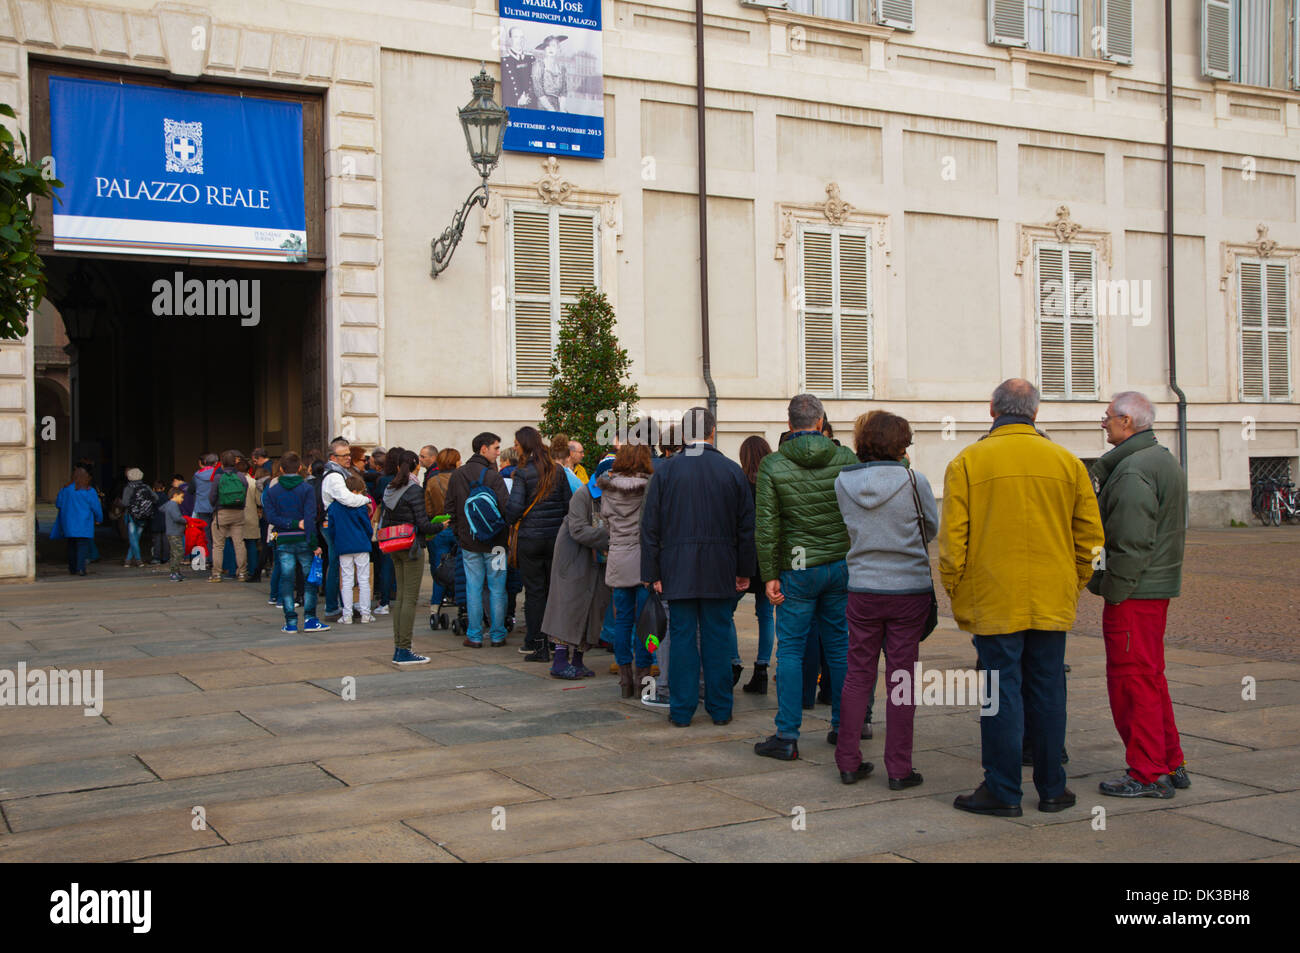 Queue to Palazzo Reale at Piazza Castello square Turin Piedmont region Italy Europe - Stock Image